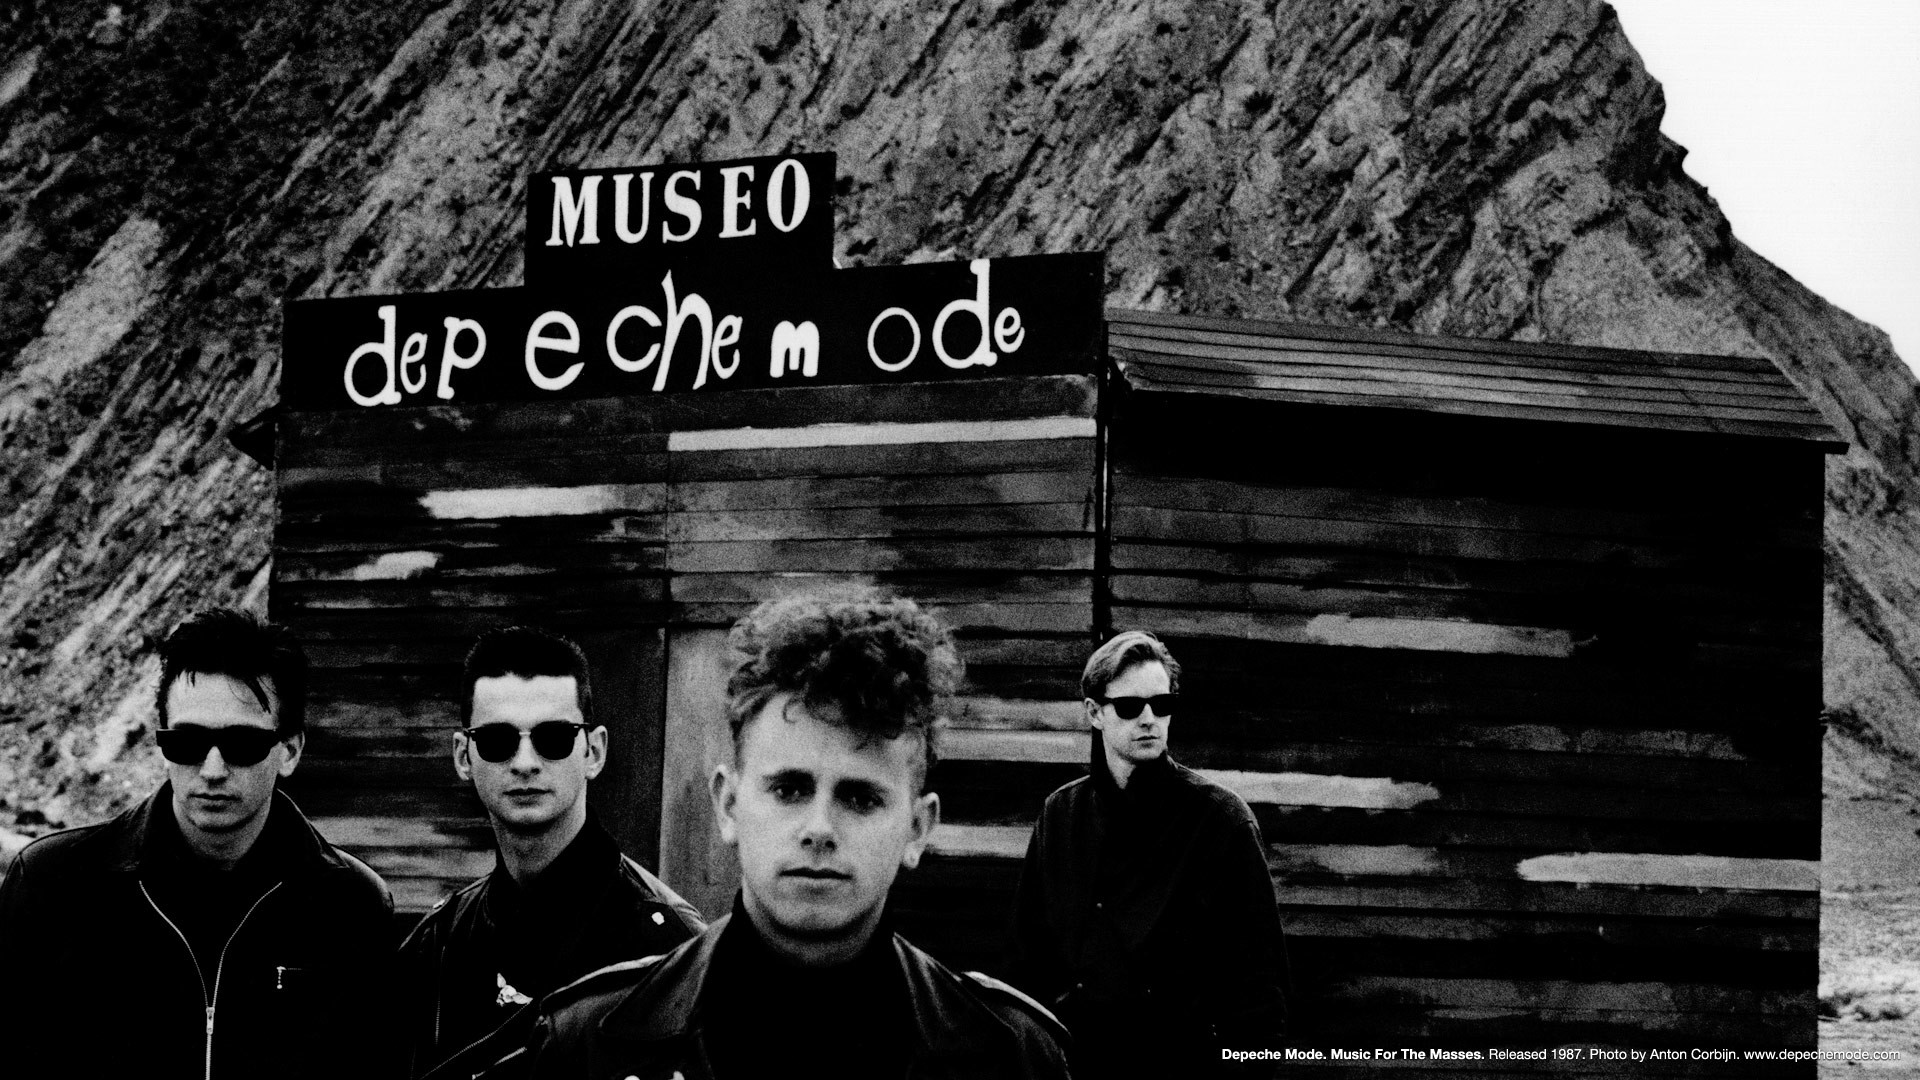 1920x1080 http://archives.depechemode.com/gr/images/wallpaper/